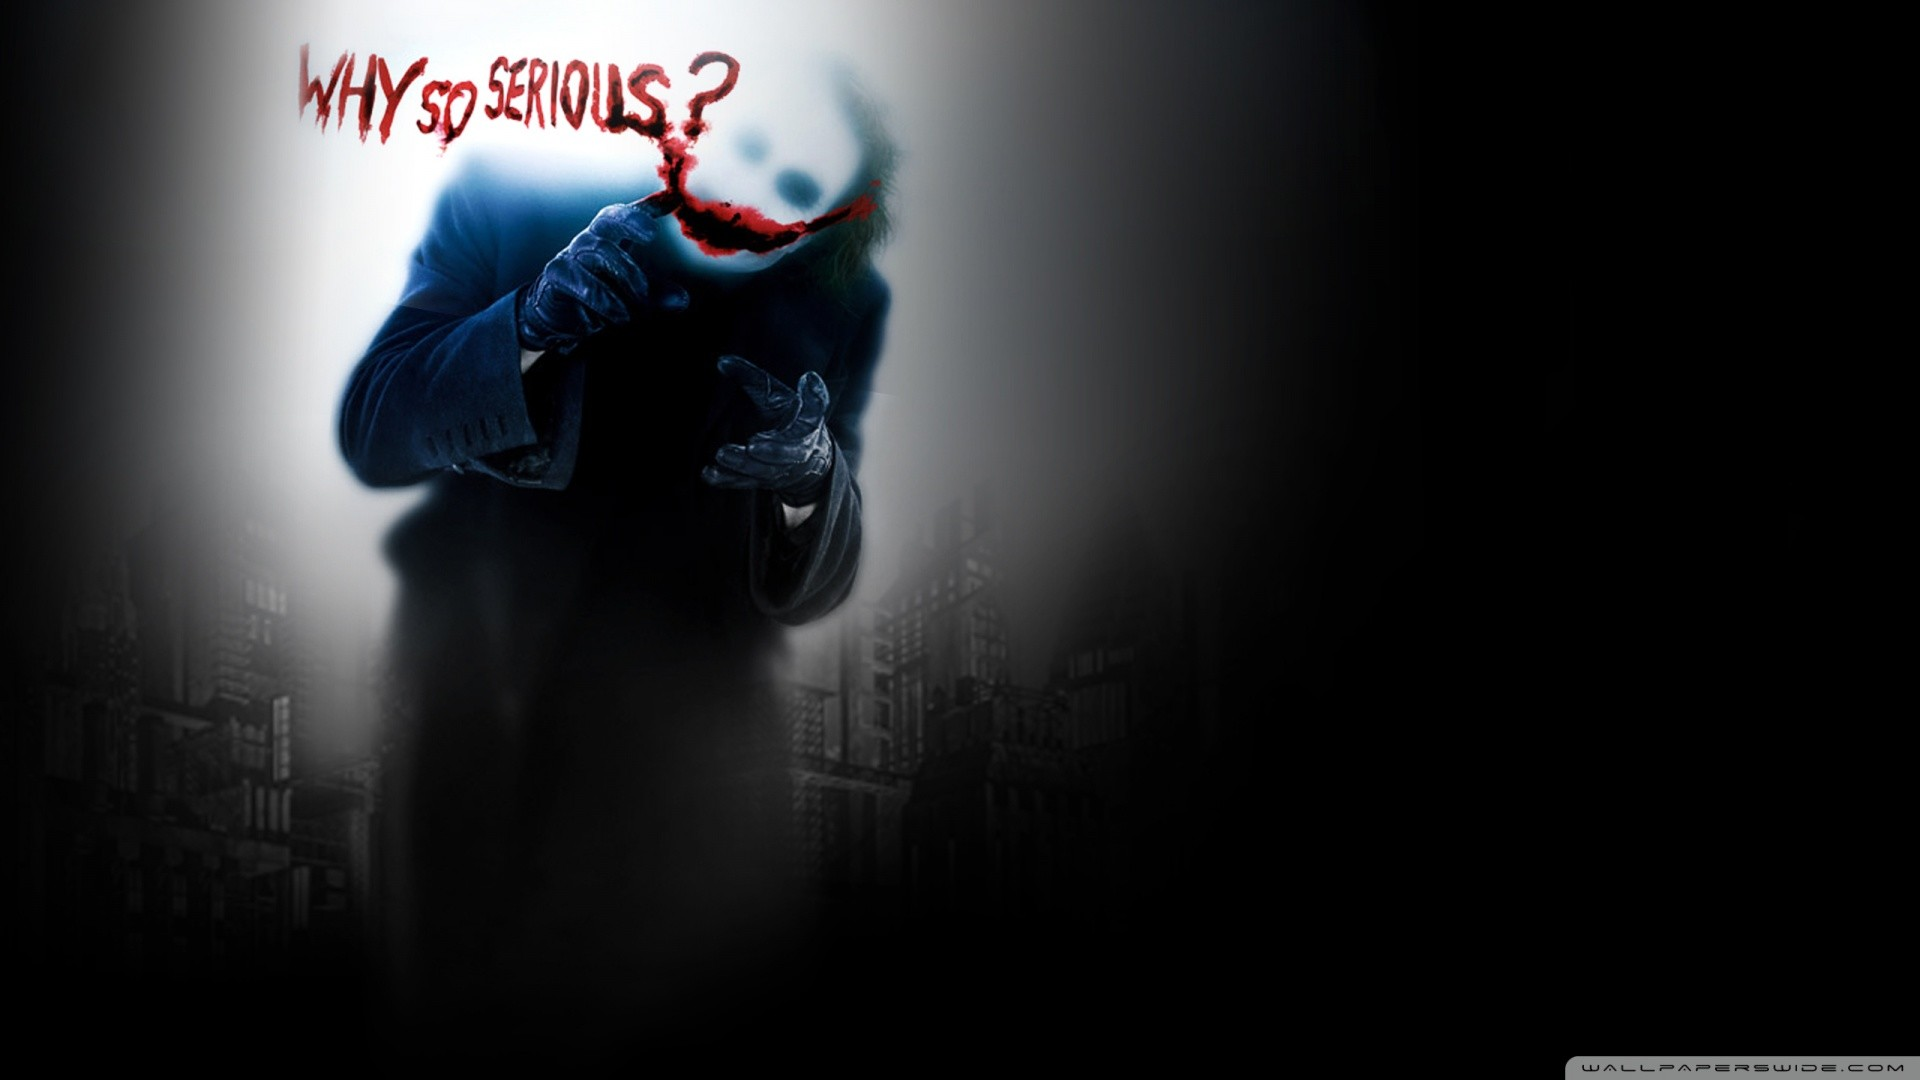 Res: 1920x1080, 6. joker-wallpaper6-600x338